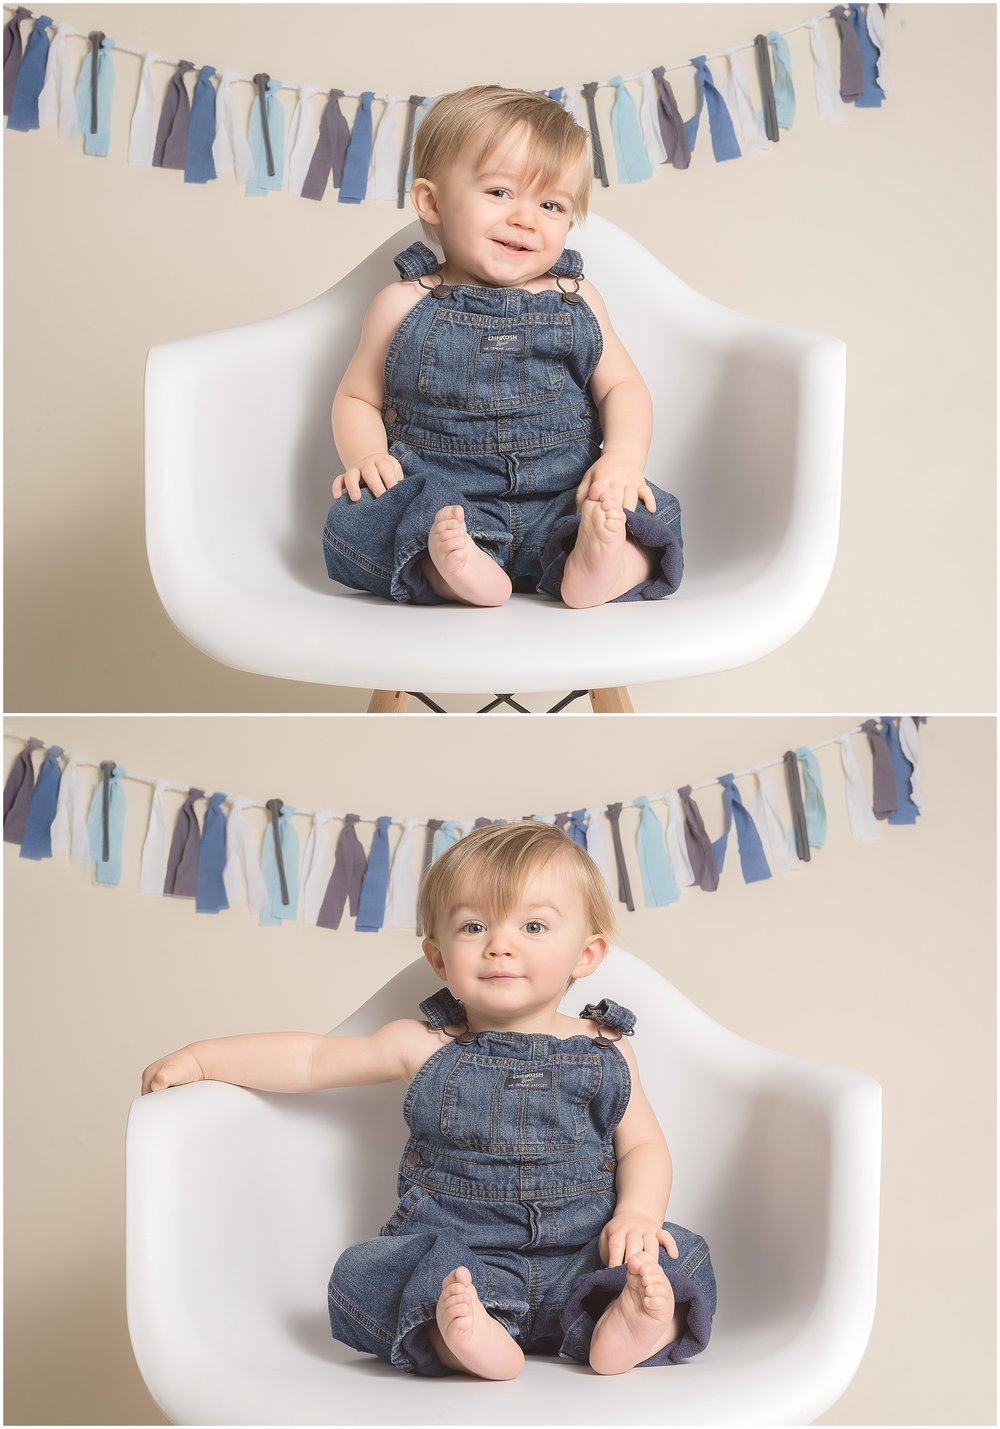 The classic look of #oshgoshbigosh overalls are one of my favorites for little guys!